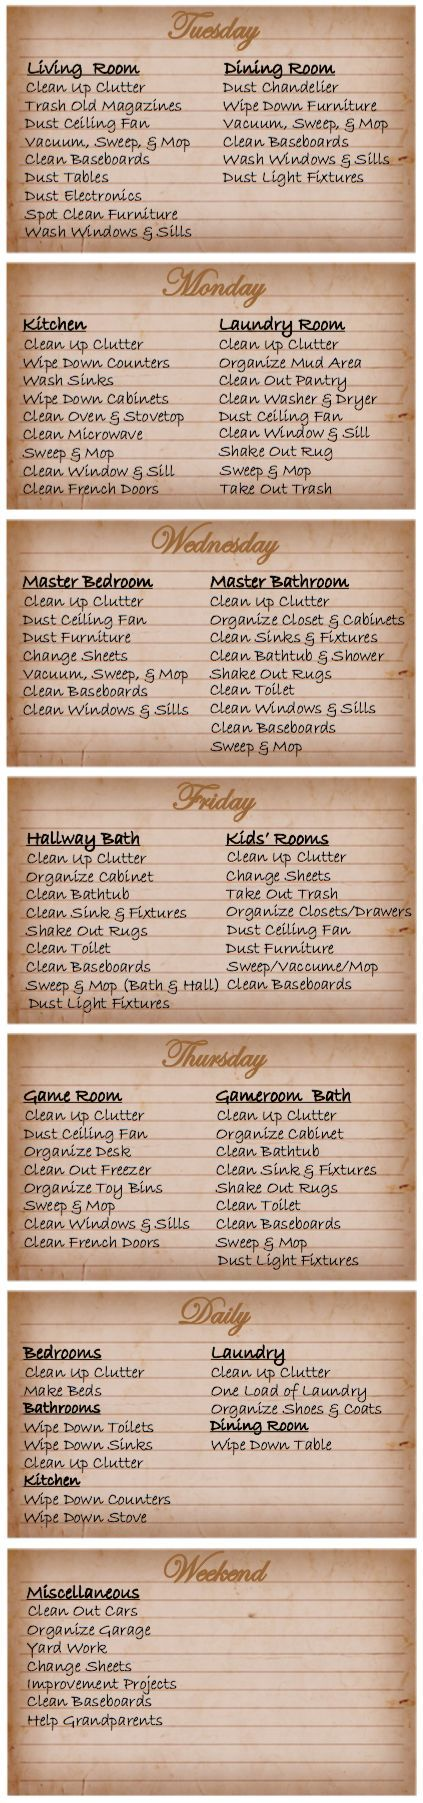 FREE printable house cleaning schedule from Blessed Messes. WOW!